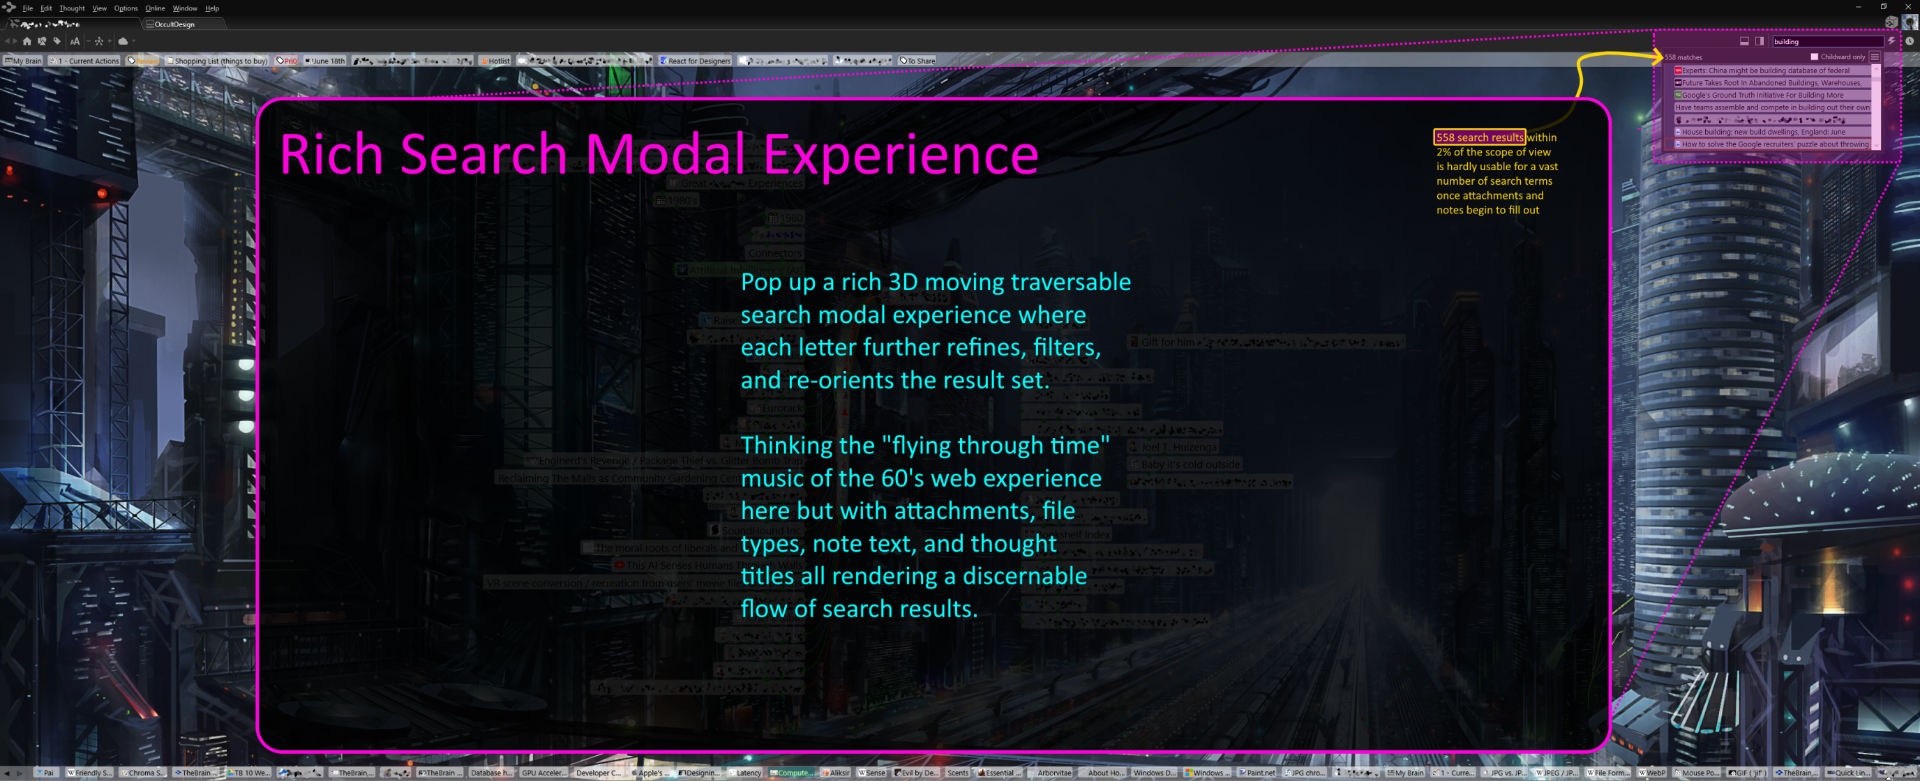 Rich Search Modal Experience.png